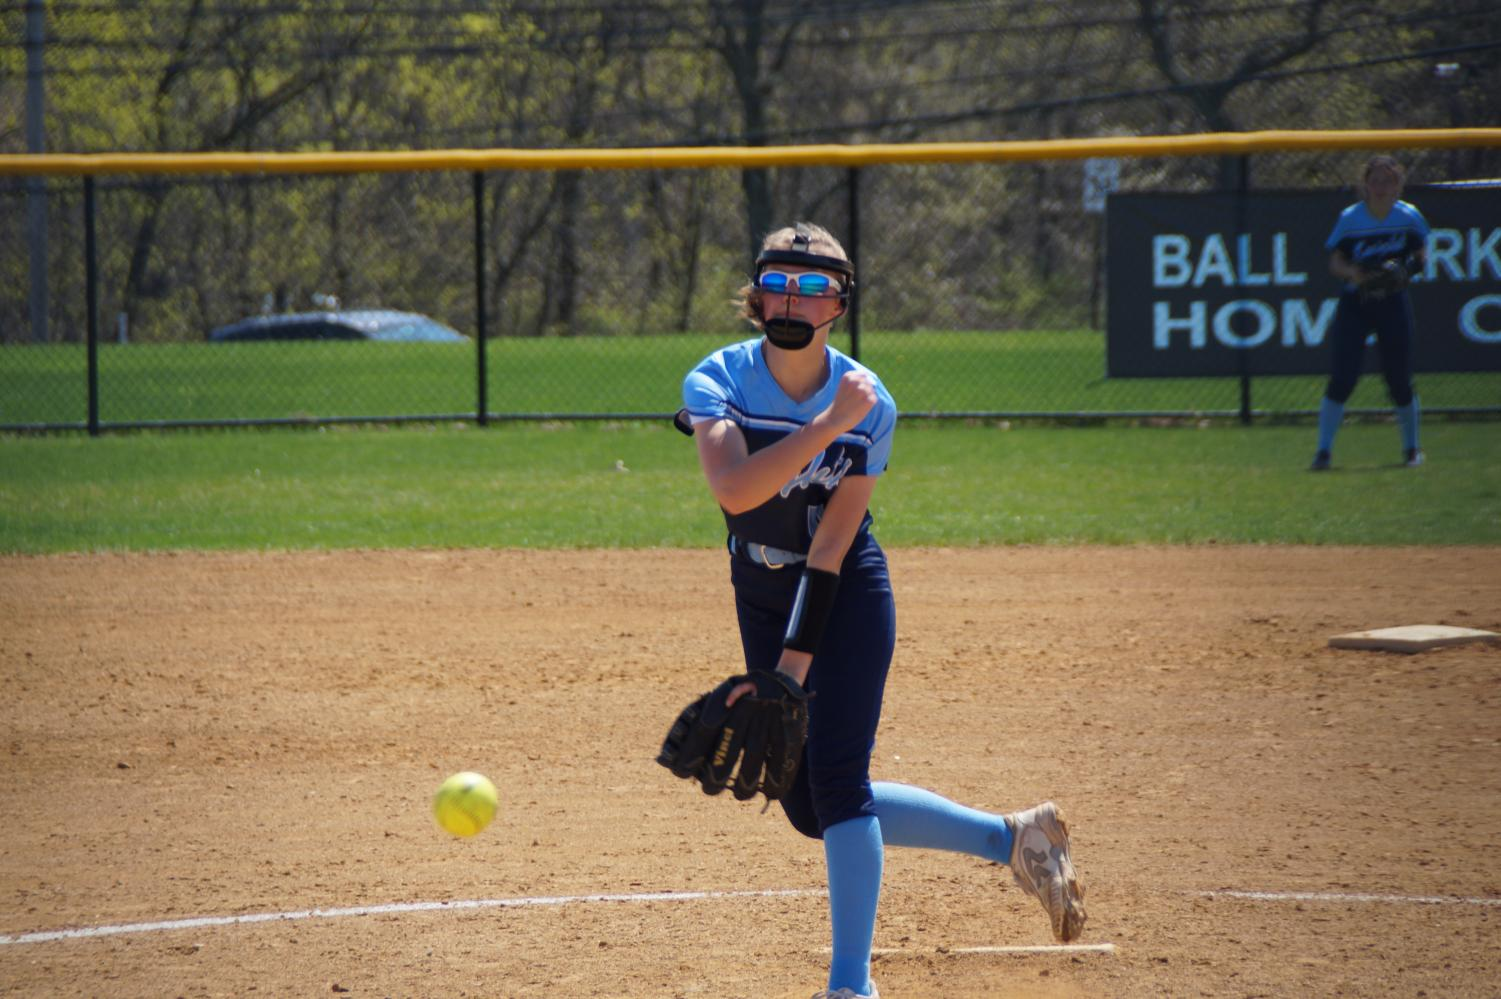 Rachel Lowry in the final inning of her complete game shutout.